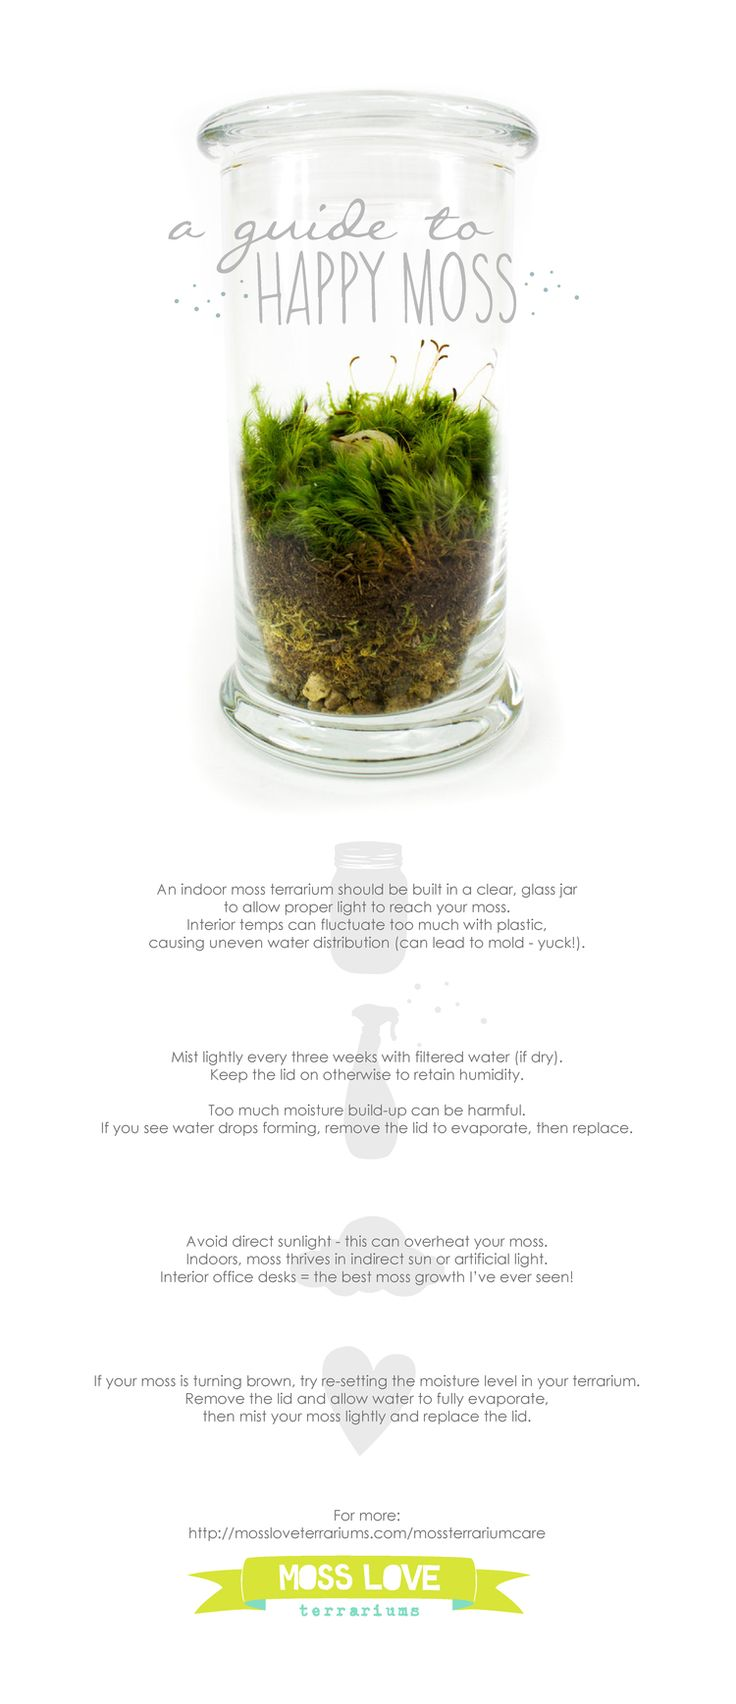 A Guide to Happy Moss - Moss Love Terrariums Blog #moss #terrarium #care